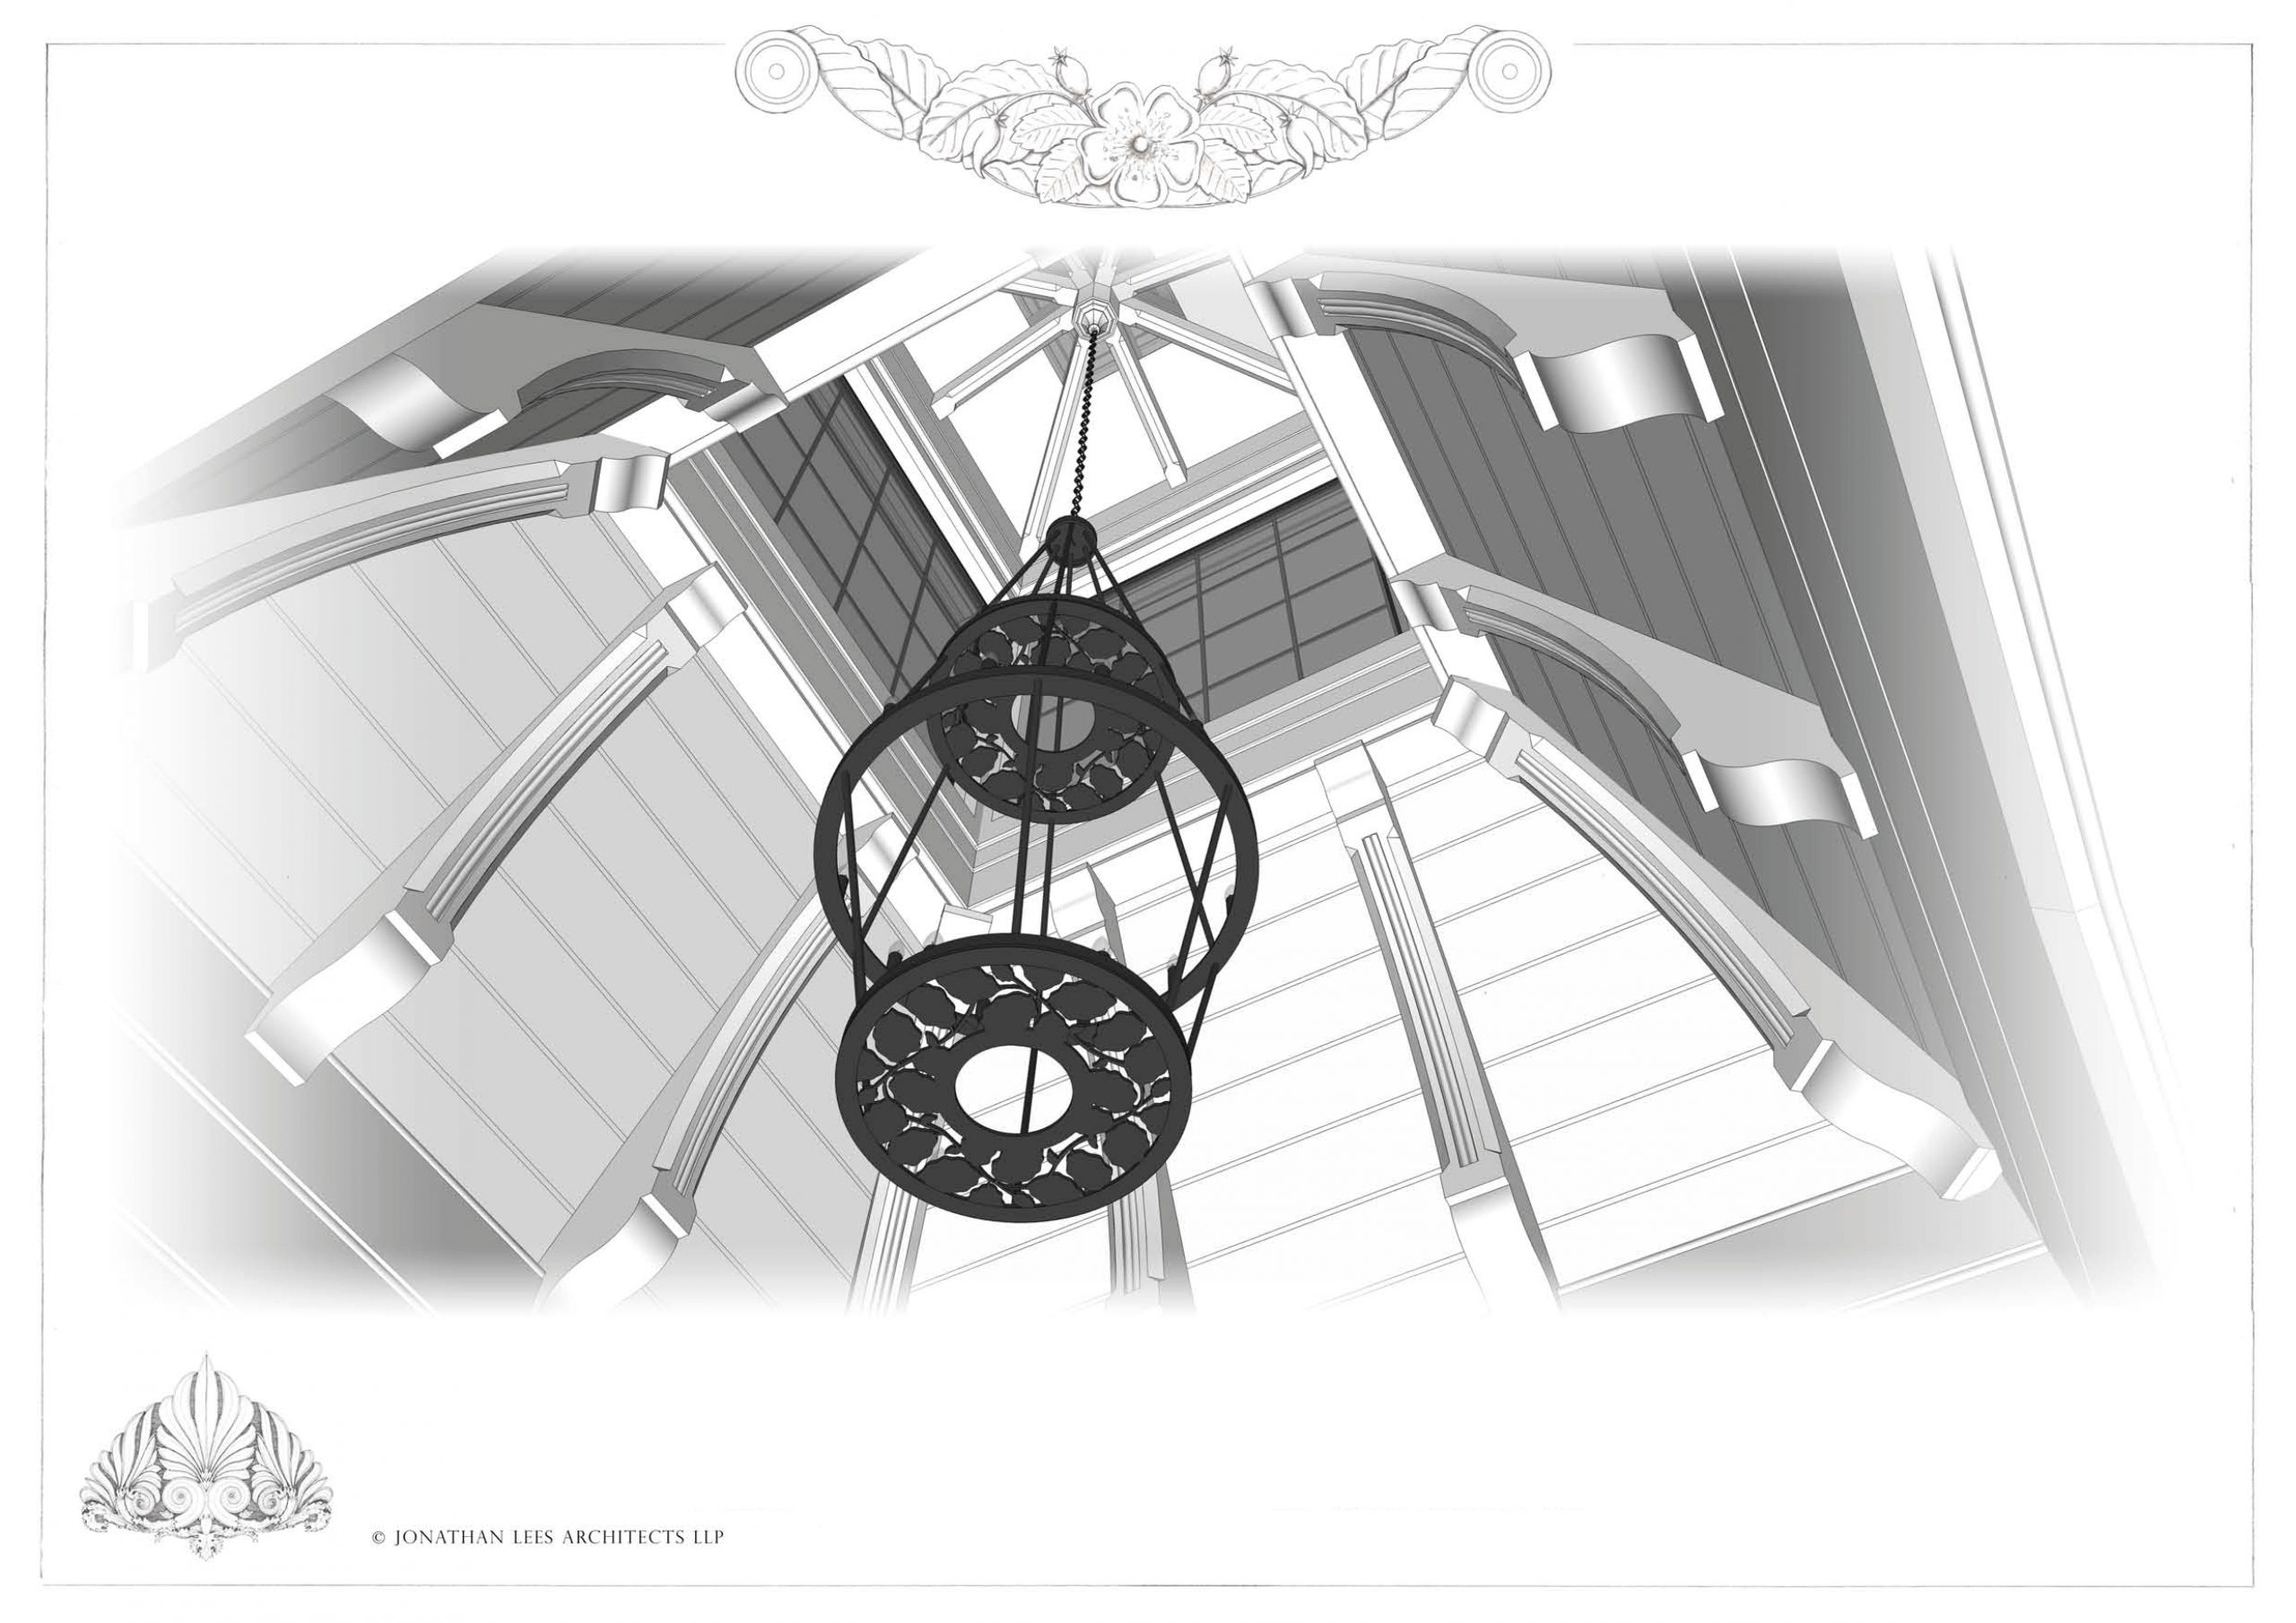 Design for feature exposed oak roof and skylight